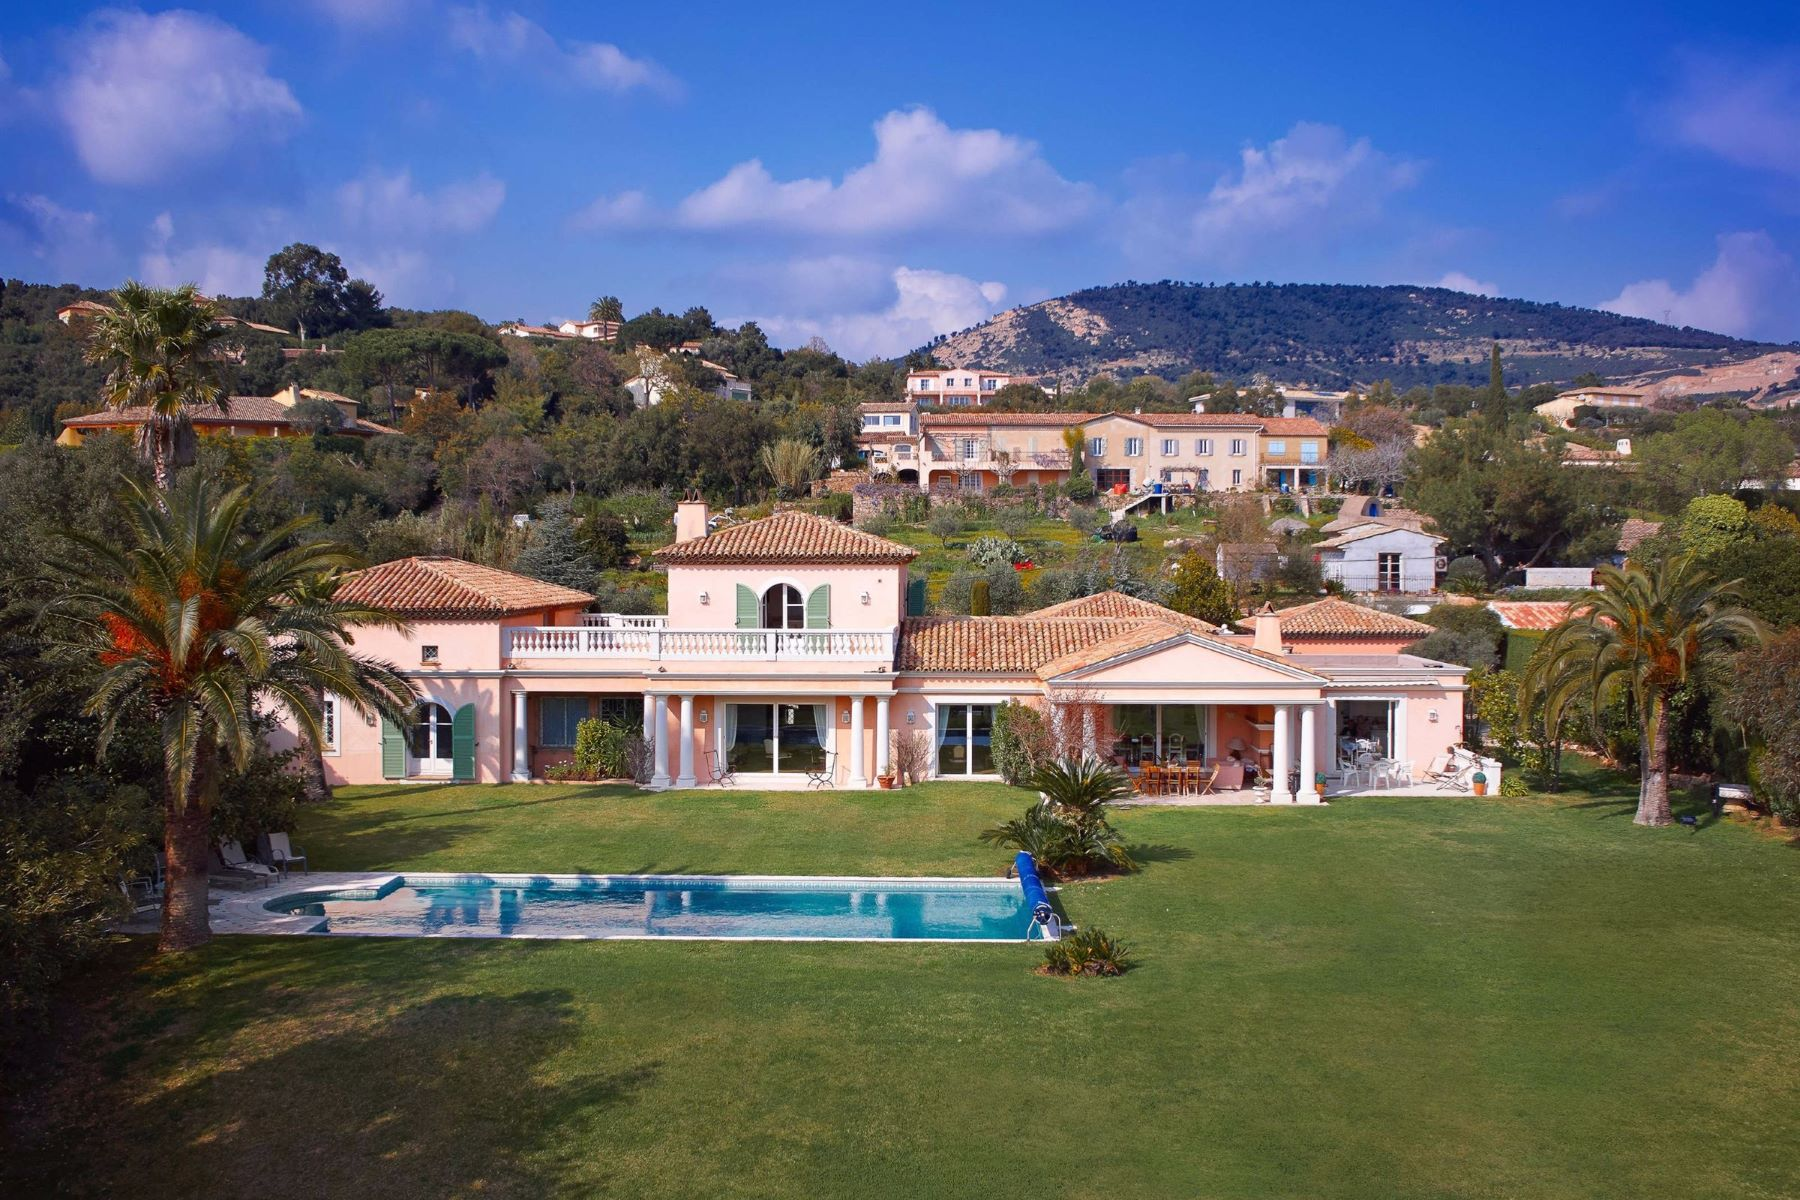 Single Family Home for Sale at Property with sea view and tennis court Grimaud, Provence-Alpes-Cote D'Azur, 83310 France